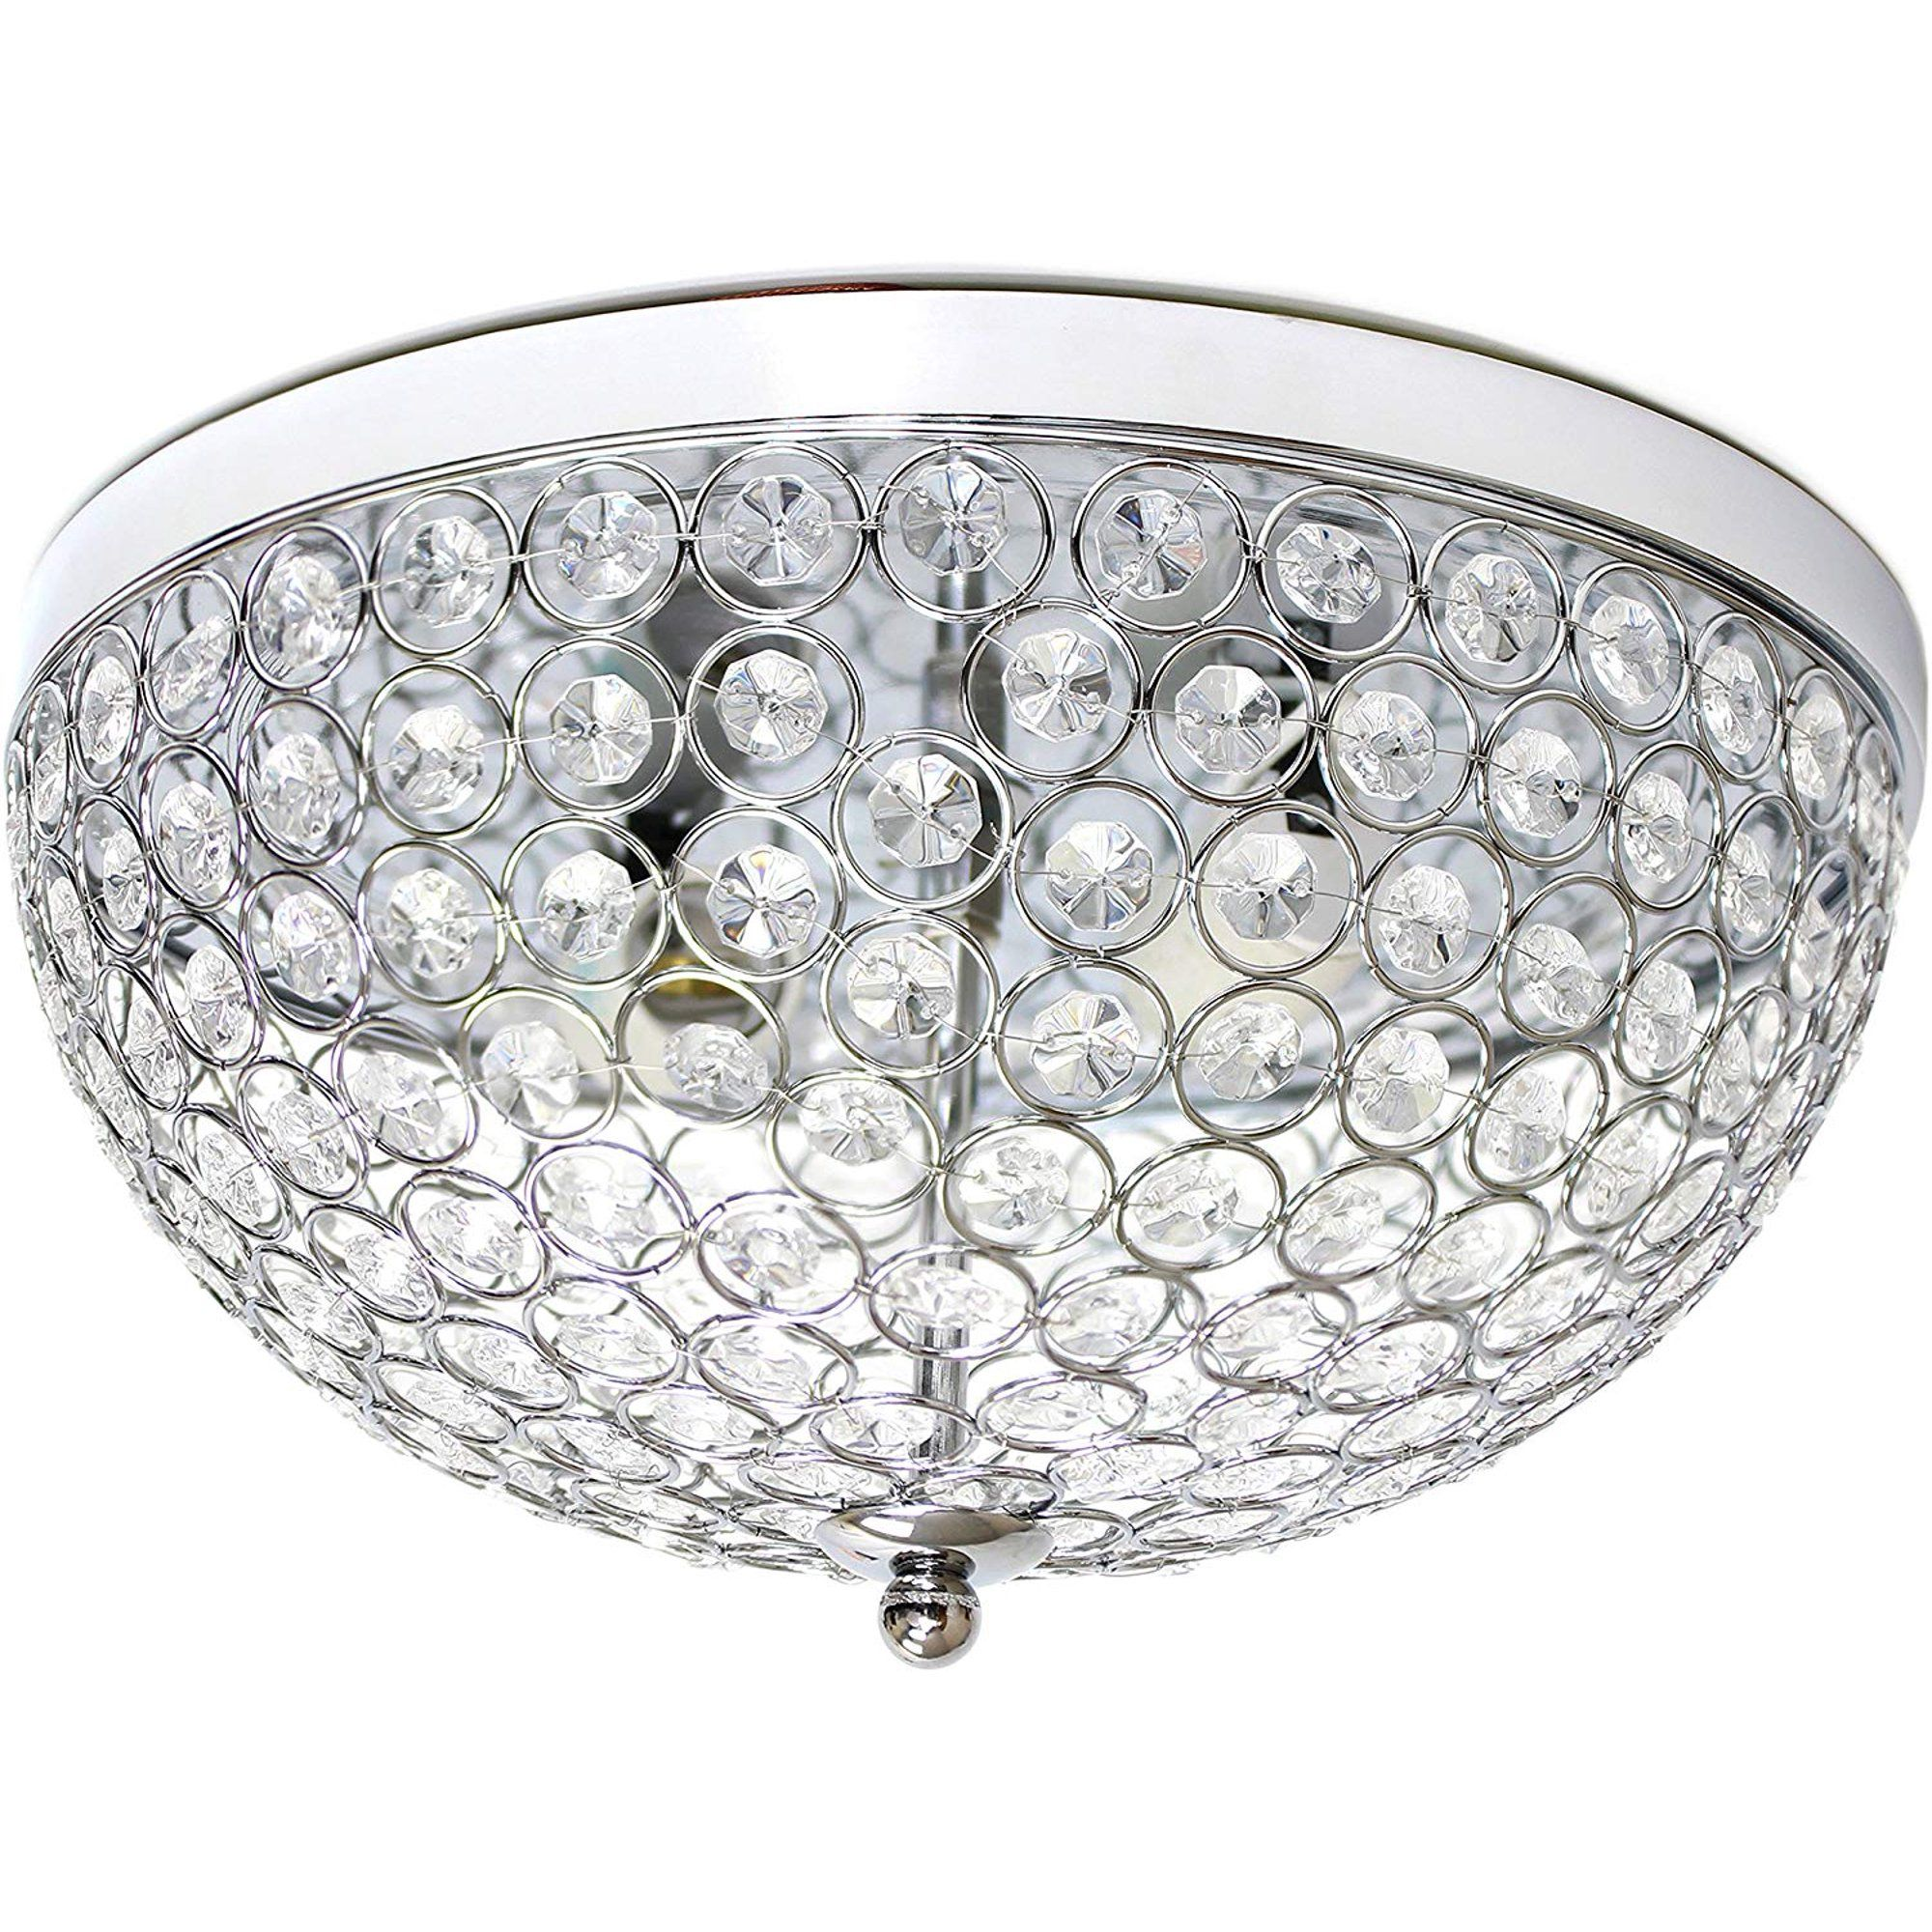 2 Light Modern Silver Chic Crystal Flush Mount Ceiling Fixture Walmart Com In 2020 Silver Chic Ceiling Fixtures Flush Mount Ceiling